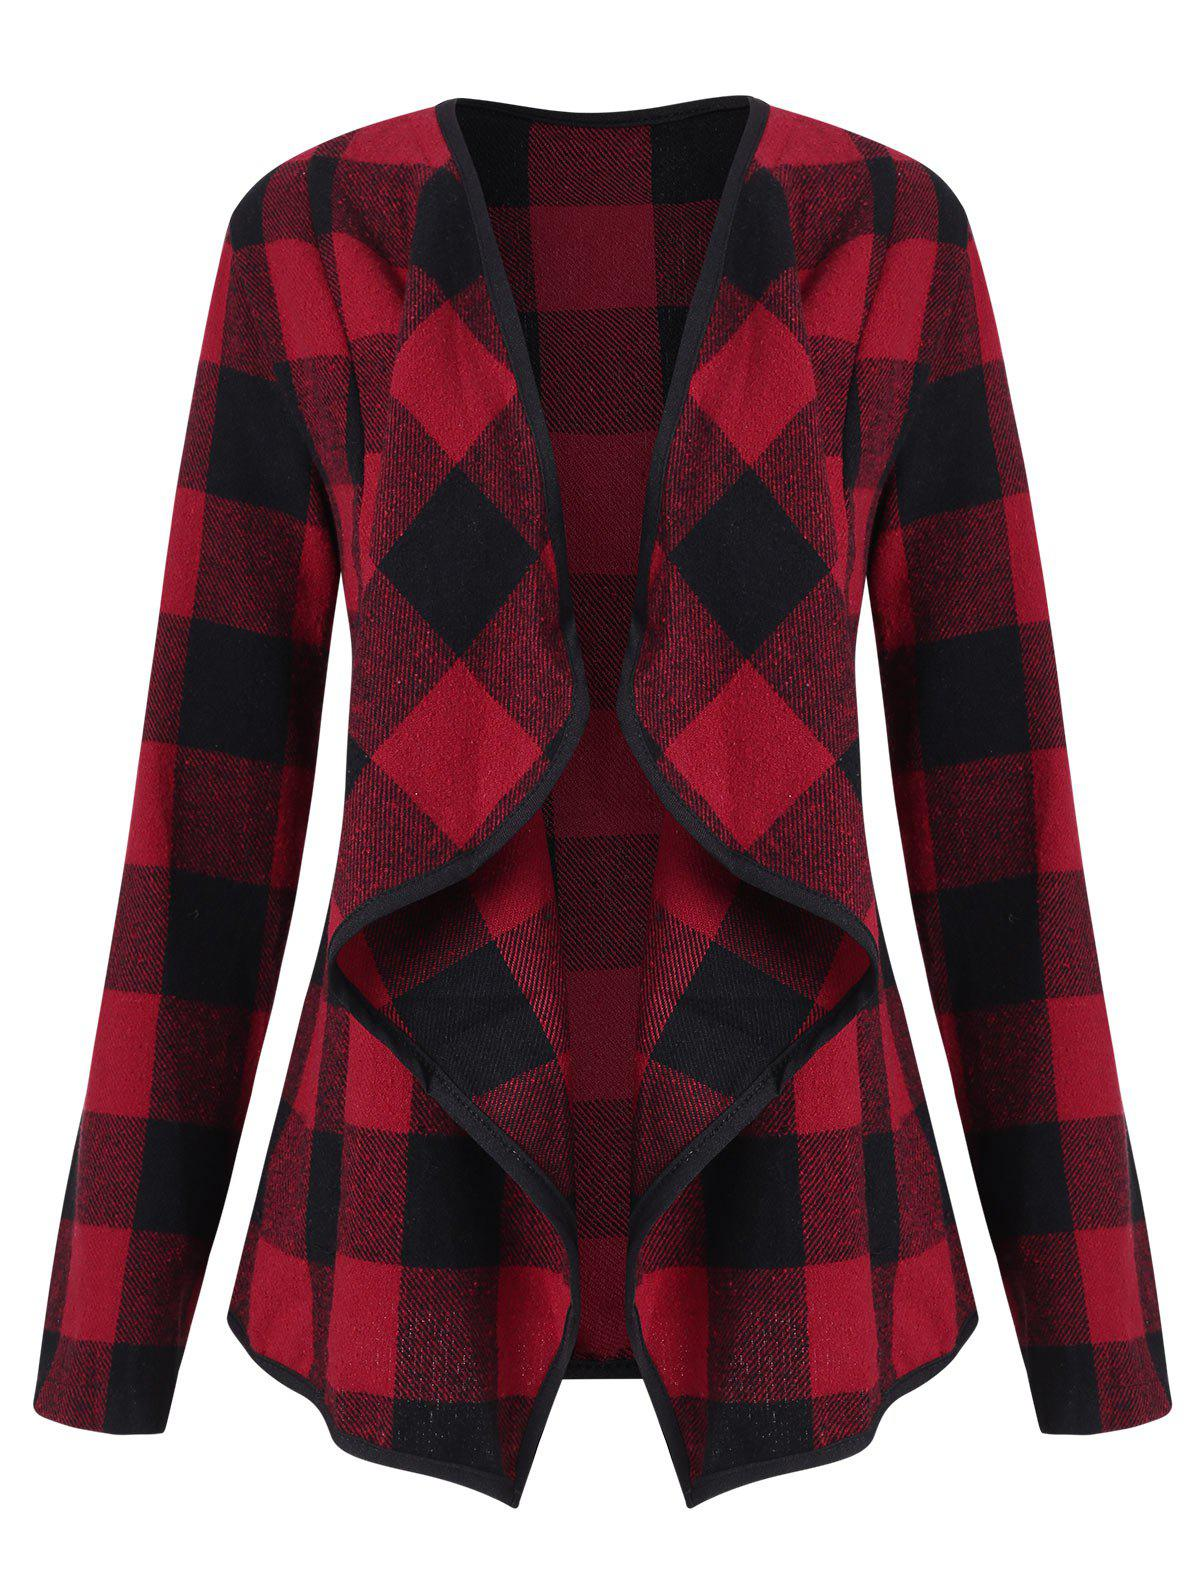 Plaid Draped Open Jacket - RED WINE XL